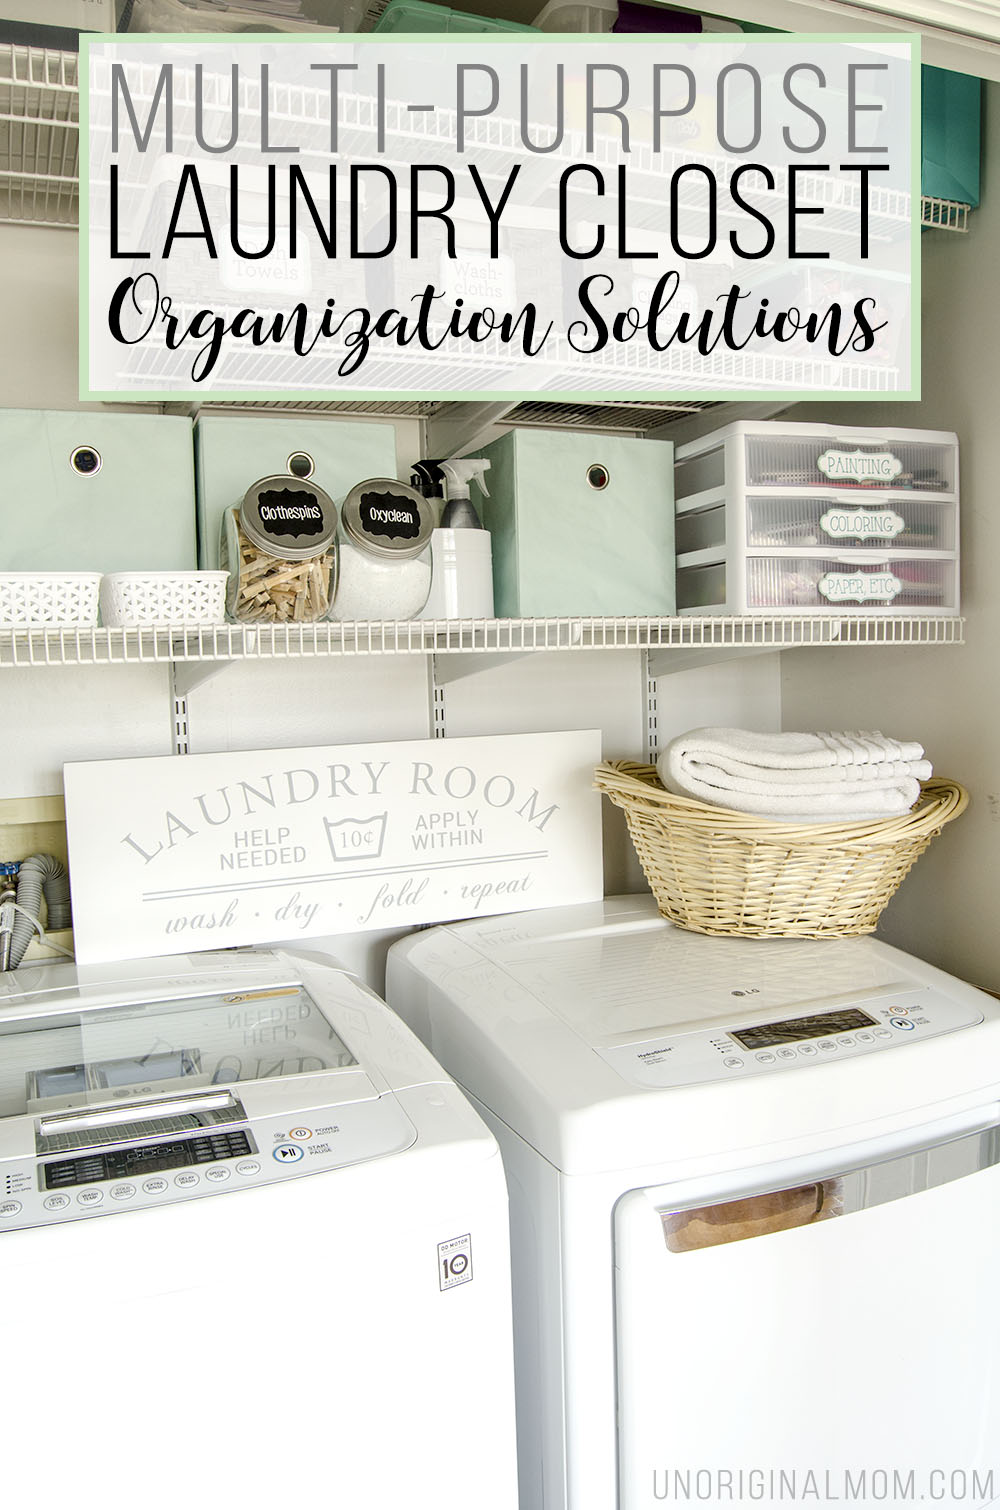 Organizing ideas and solutions for a small  multi purpose laundry closet   complete with. Multi Purpose Laundry Closet Organization Solutions   unOriginal Mom